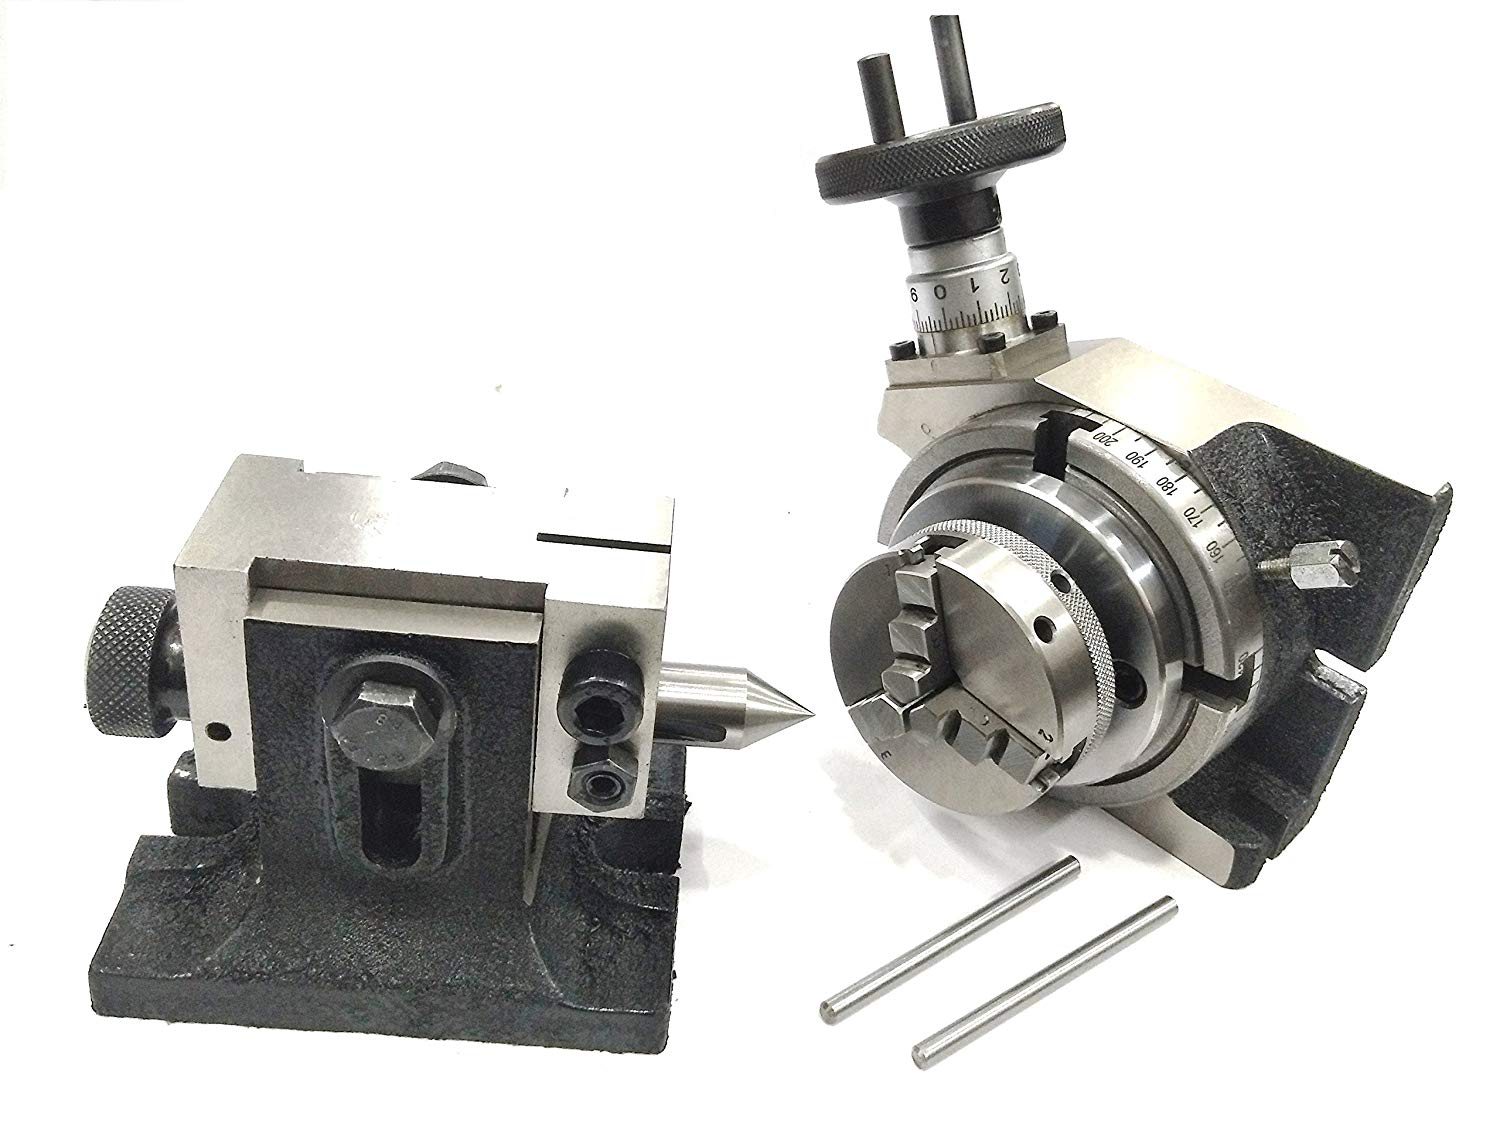 "ROTARY TABLE 4/"" TILTING SINGLE BOLT TAILSTOCK 100 MM SELF CENTERING CHUCK"